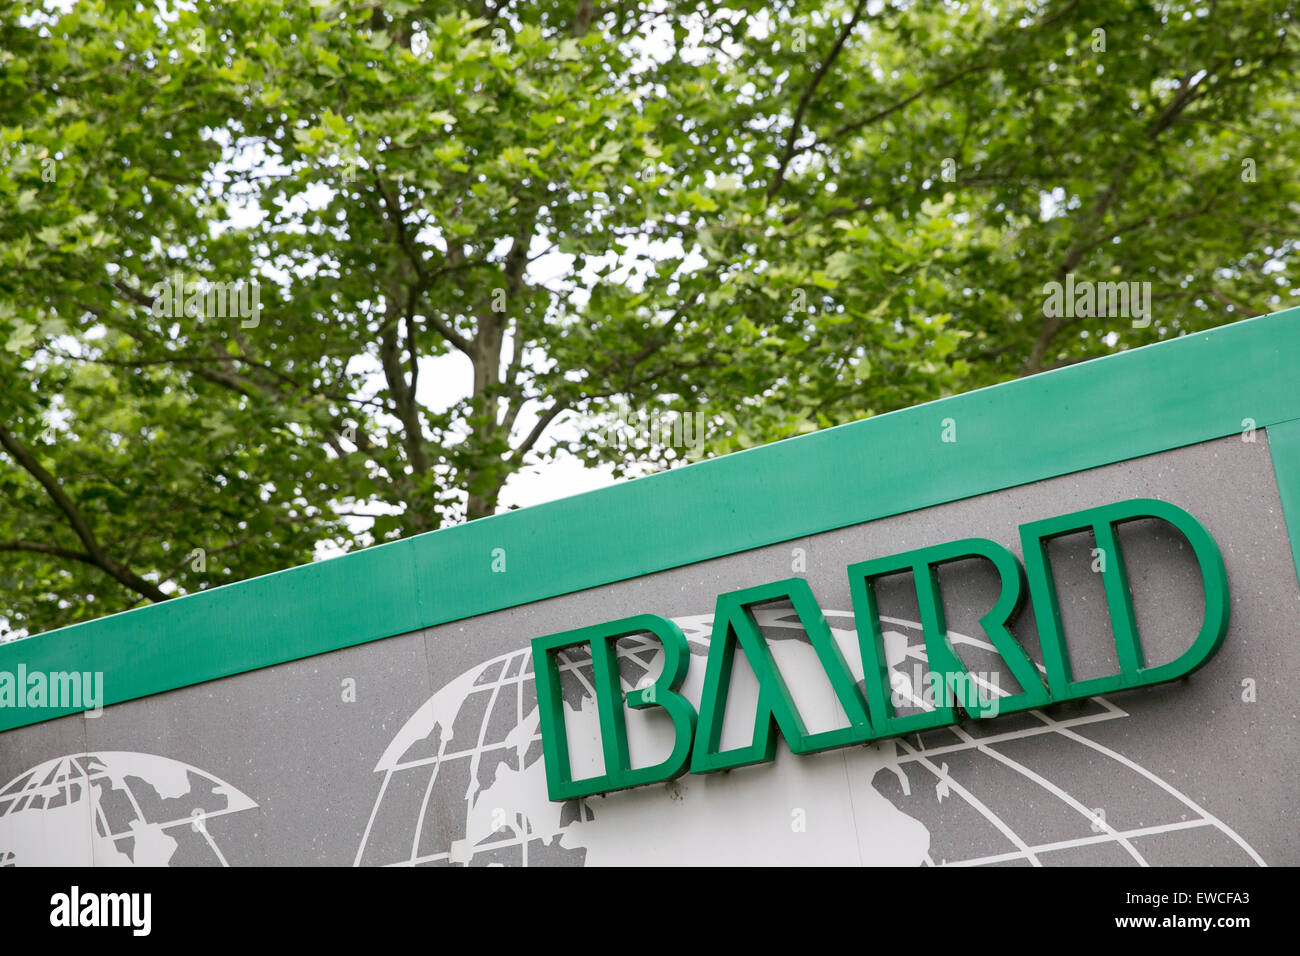 A logo sign outside of the headquarters of C. R. Bard, Inc., in New Providence, New Jersey. - Stock Image